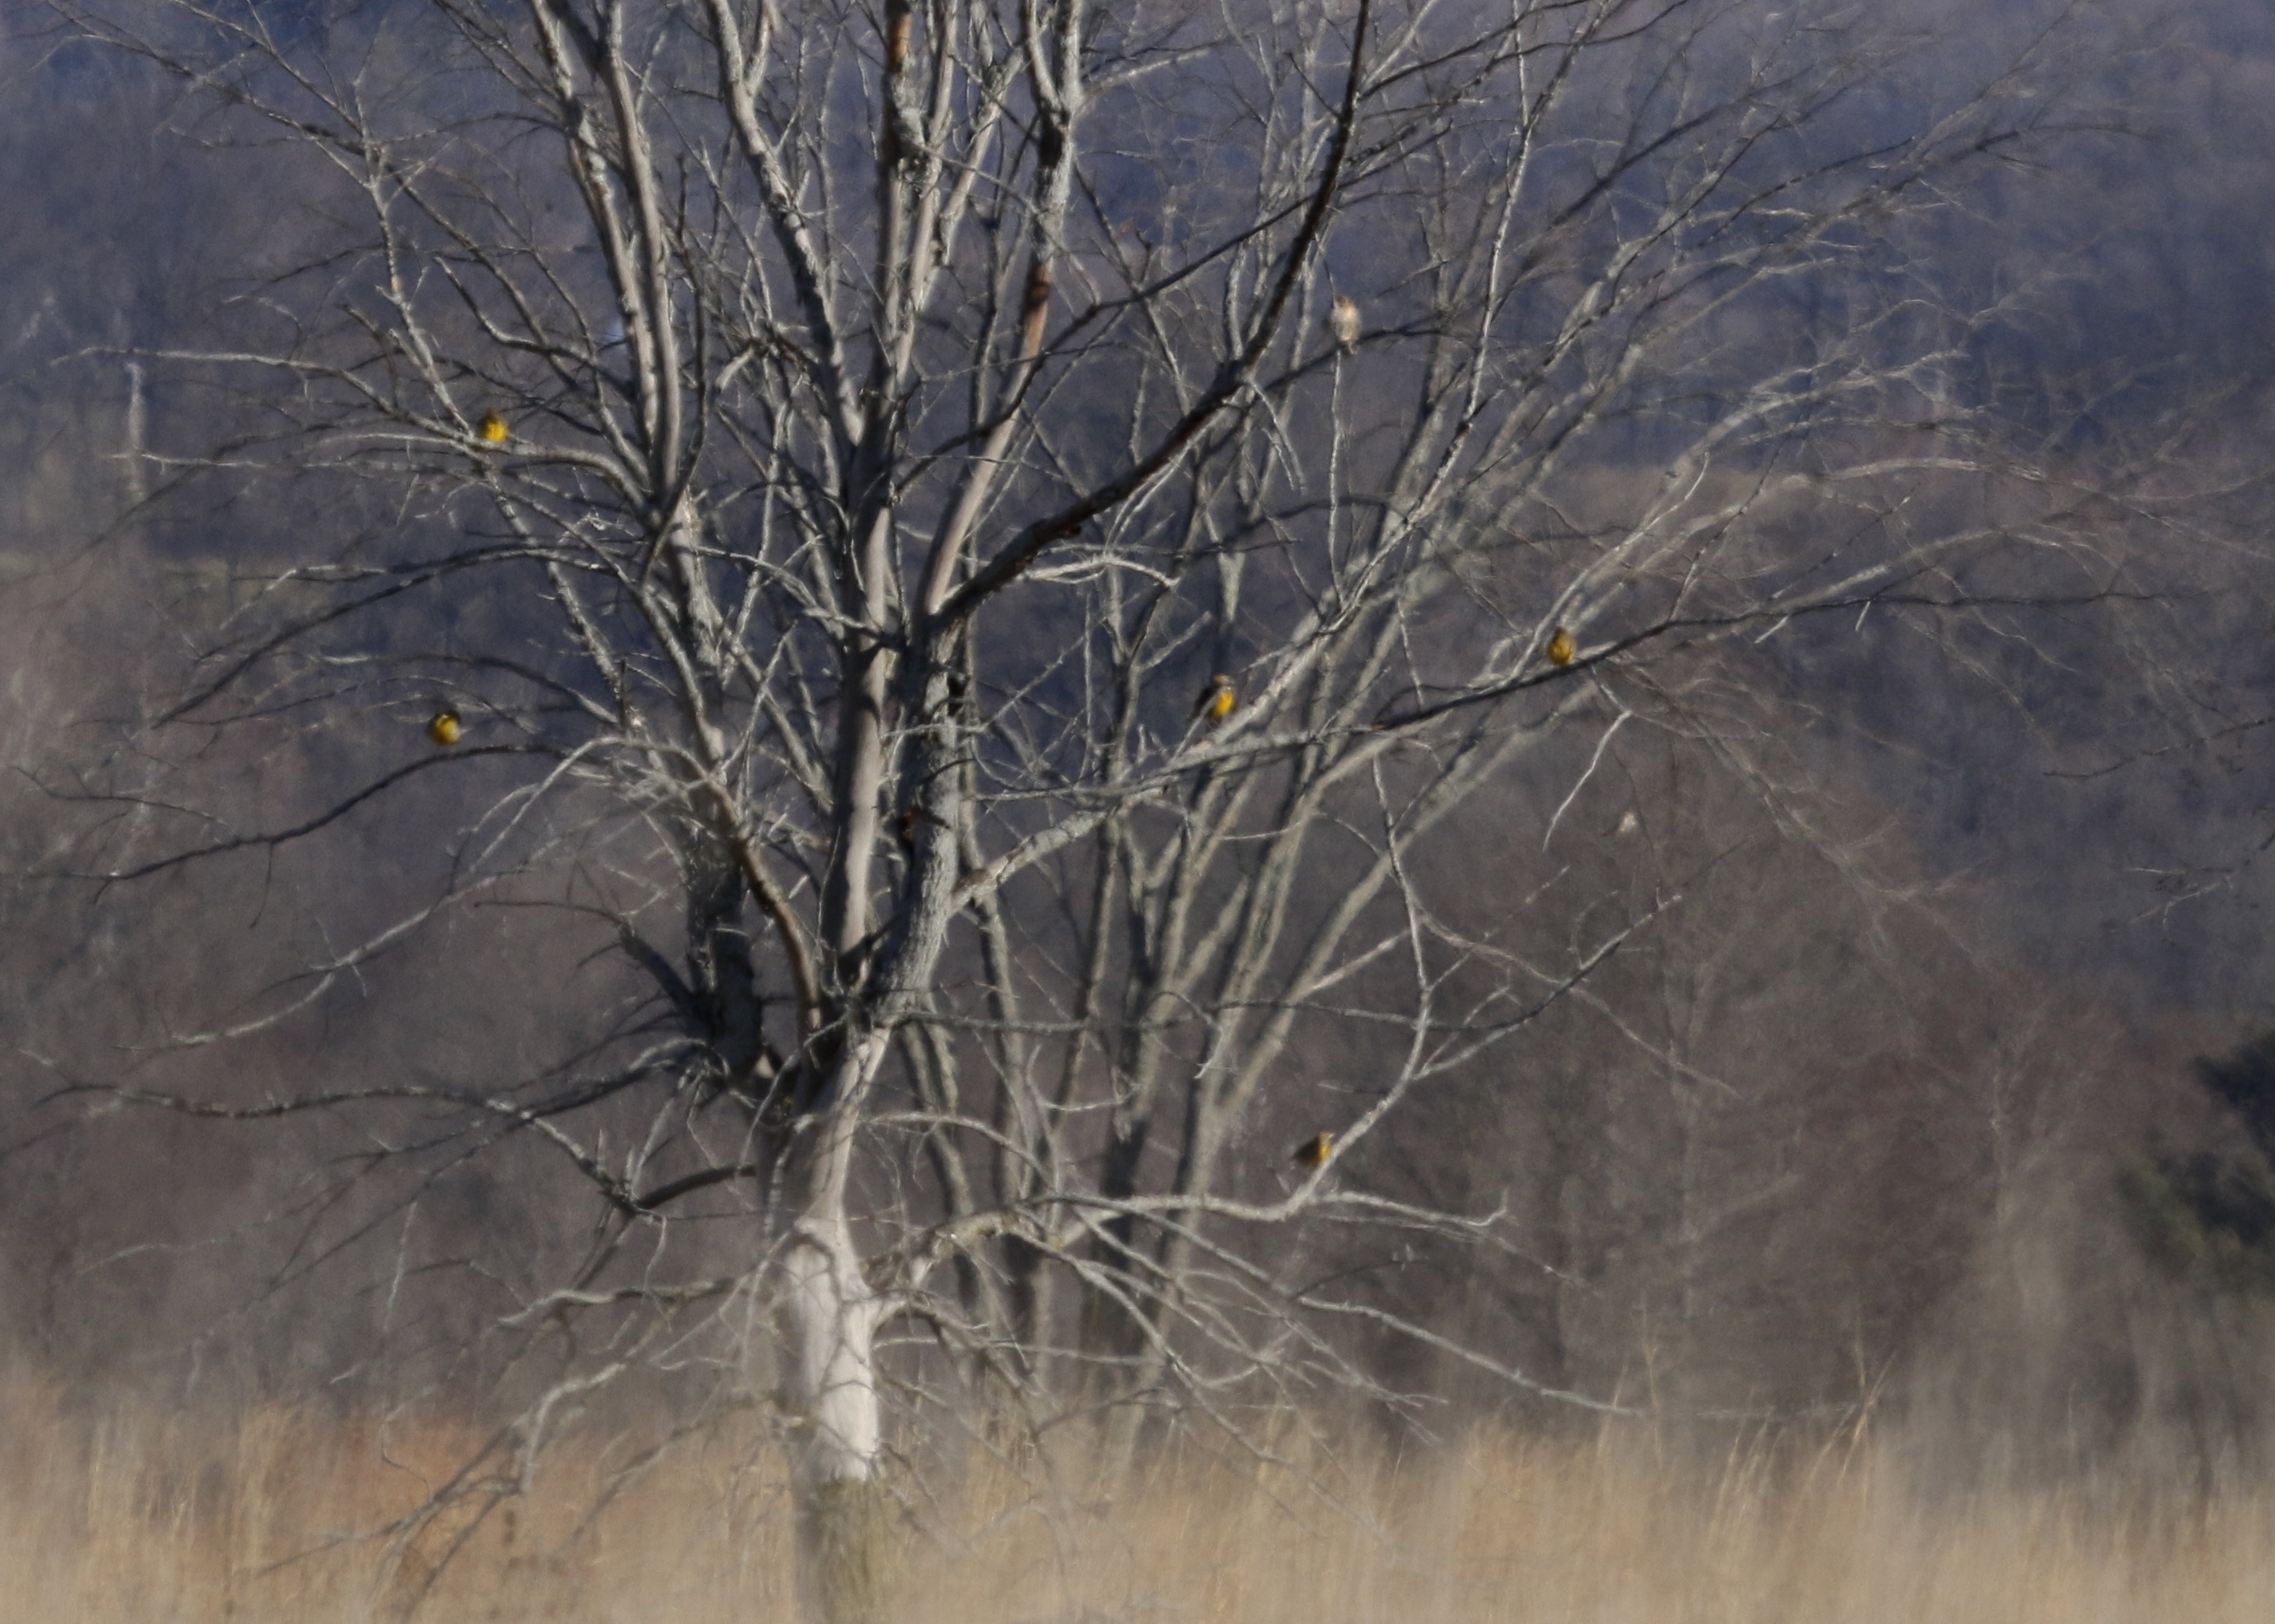 ~Five Eastern Meadowlarks perch in a tree. I believe that's a Red-tailed Hawk perched in the distance beyond the meadowlarks. Shawangunk Grasslands, NWR 12/20/15.~